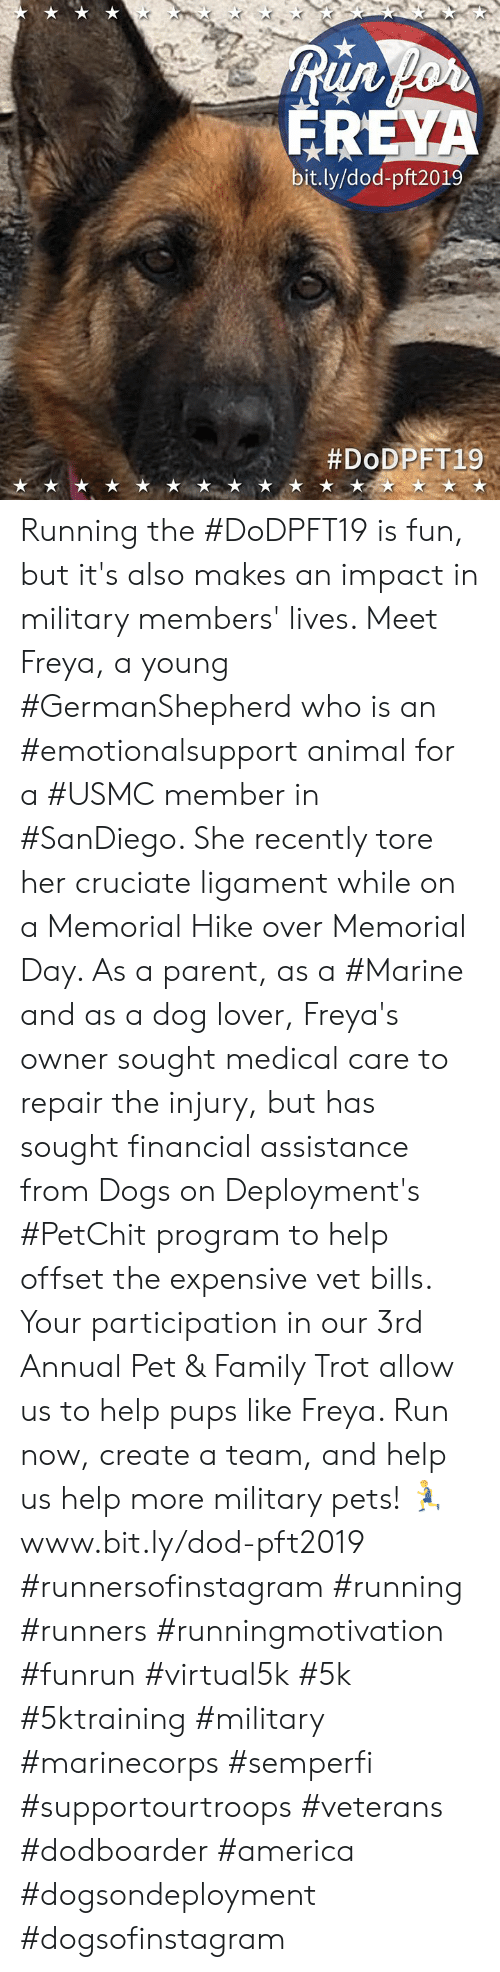 ligament: Run for  FREYA  bit.ly/dod-pft2019  Running the #DoDPFT19 is fun, but it's also makes an impact in military members' lives. Meet Freya, a young #GermanShepherd who is an #emotionalsupport animal for a #USMC member in #SanDiego. She recently tore her cruciate ligament while on a Memorial Hike over Memorial Day. As a parent, as a #Marine and as a dog lover, Freya's owner sought medical care to repair the injury, but has sought financial assistance from Dogs on Deployment's #PetChit program to help offset the expensive vet bills.   Your participation in our 3rd Annual Pet & Family Trot allow us to help pups like Freya.   Run now, create a team, and help us help more military pets! 🏃www.bit.ly/dod-pft2019  #runnersofinstagram #running #runners #runningmotivation #funrun #virtual5k #5k #5ktraining #military  #marinecorps #semperfi #supportourtroops #veterans #dodboarder #america #dogsondeployment #dogsofinstagram